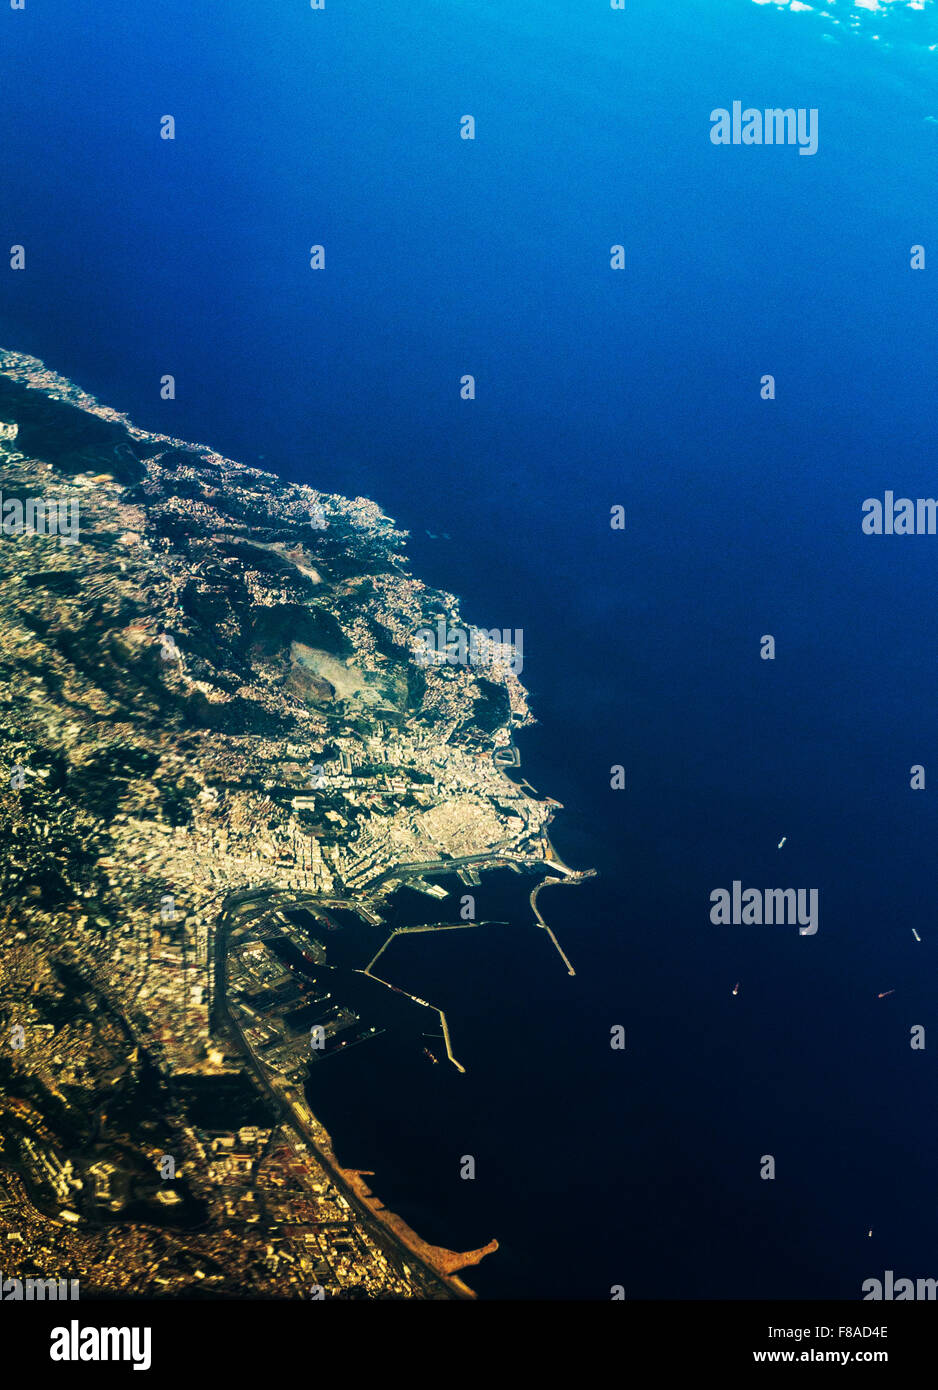 An aerial view of Algiers, the capital of Algeria. - Stock Image